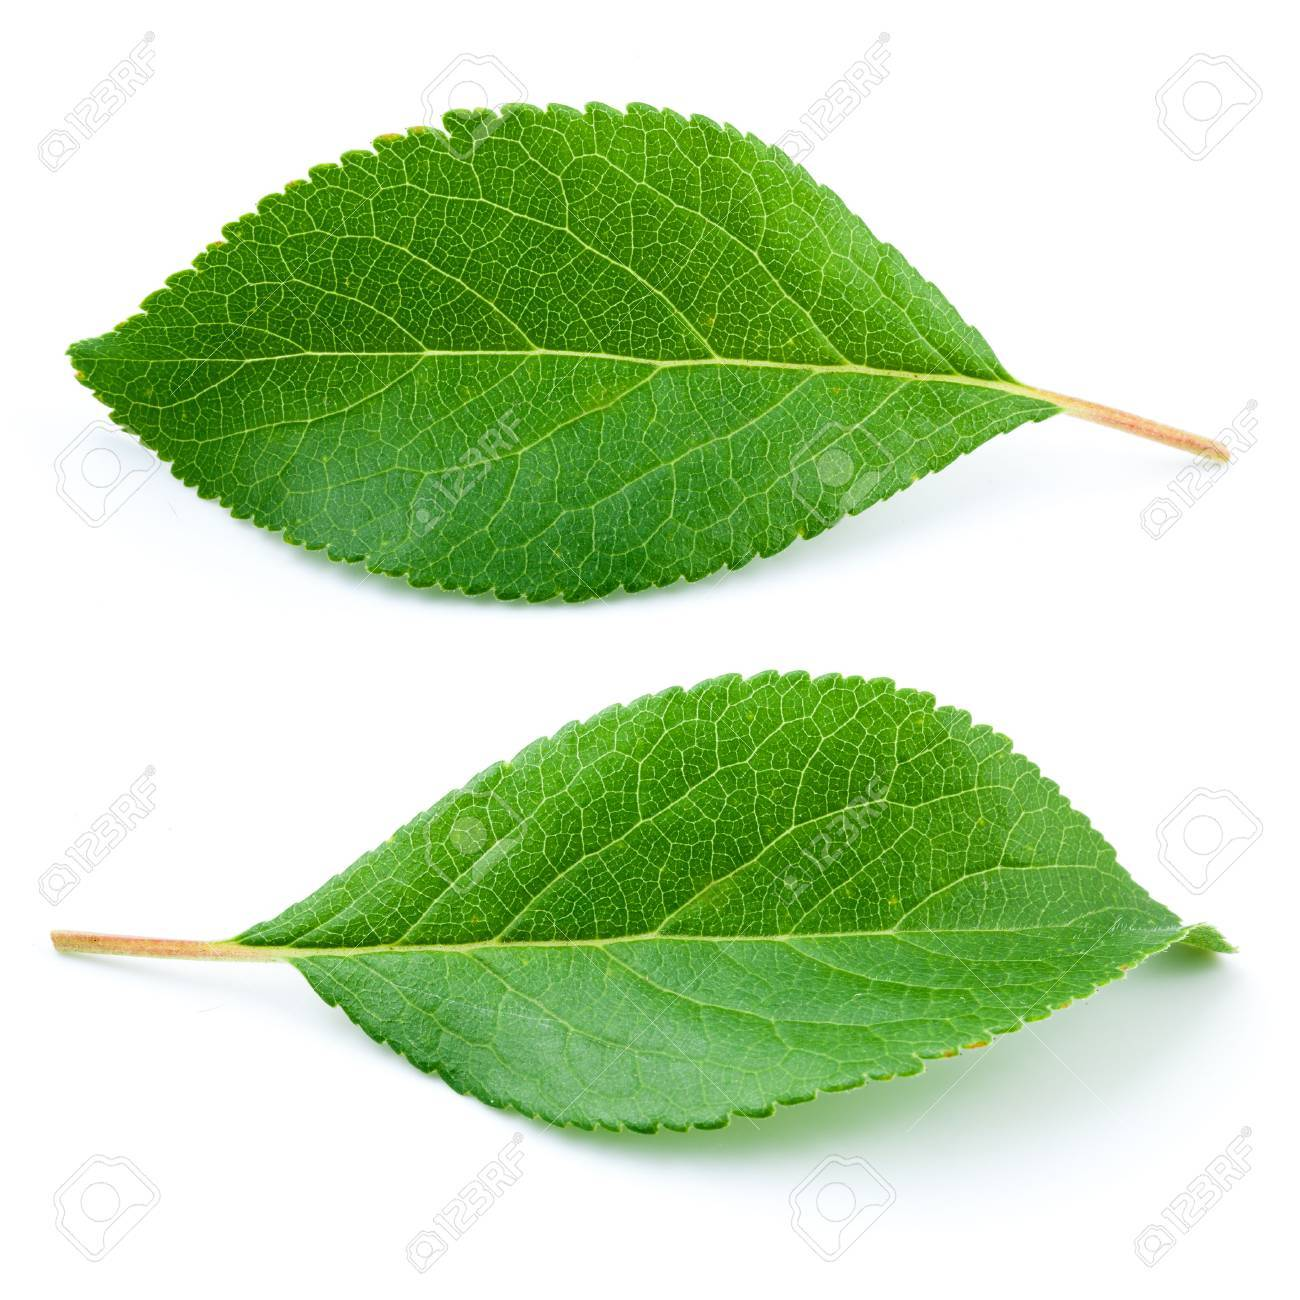 Plum leaves isolated on white background - 57051883